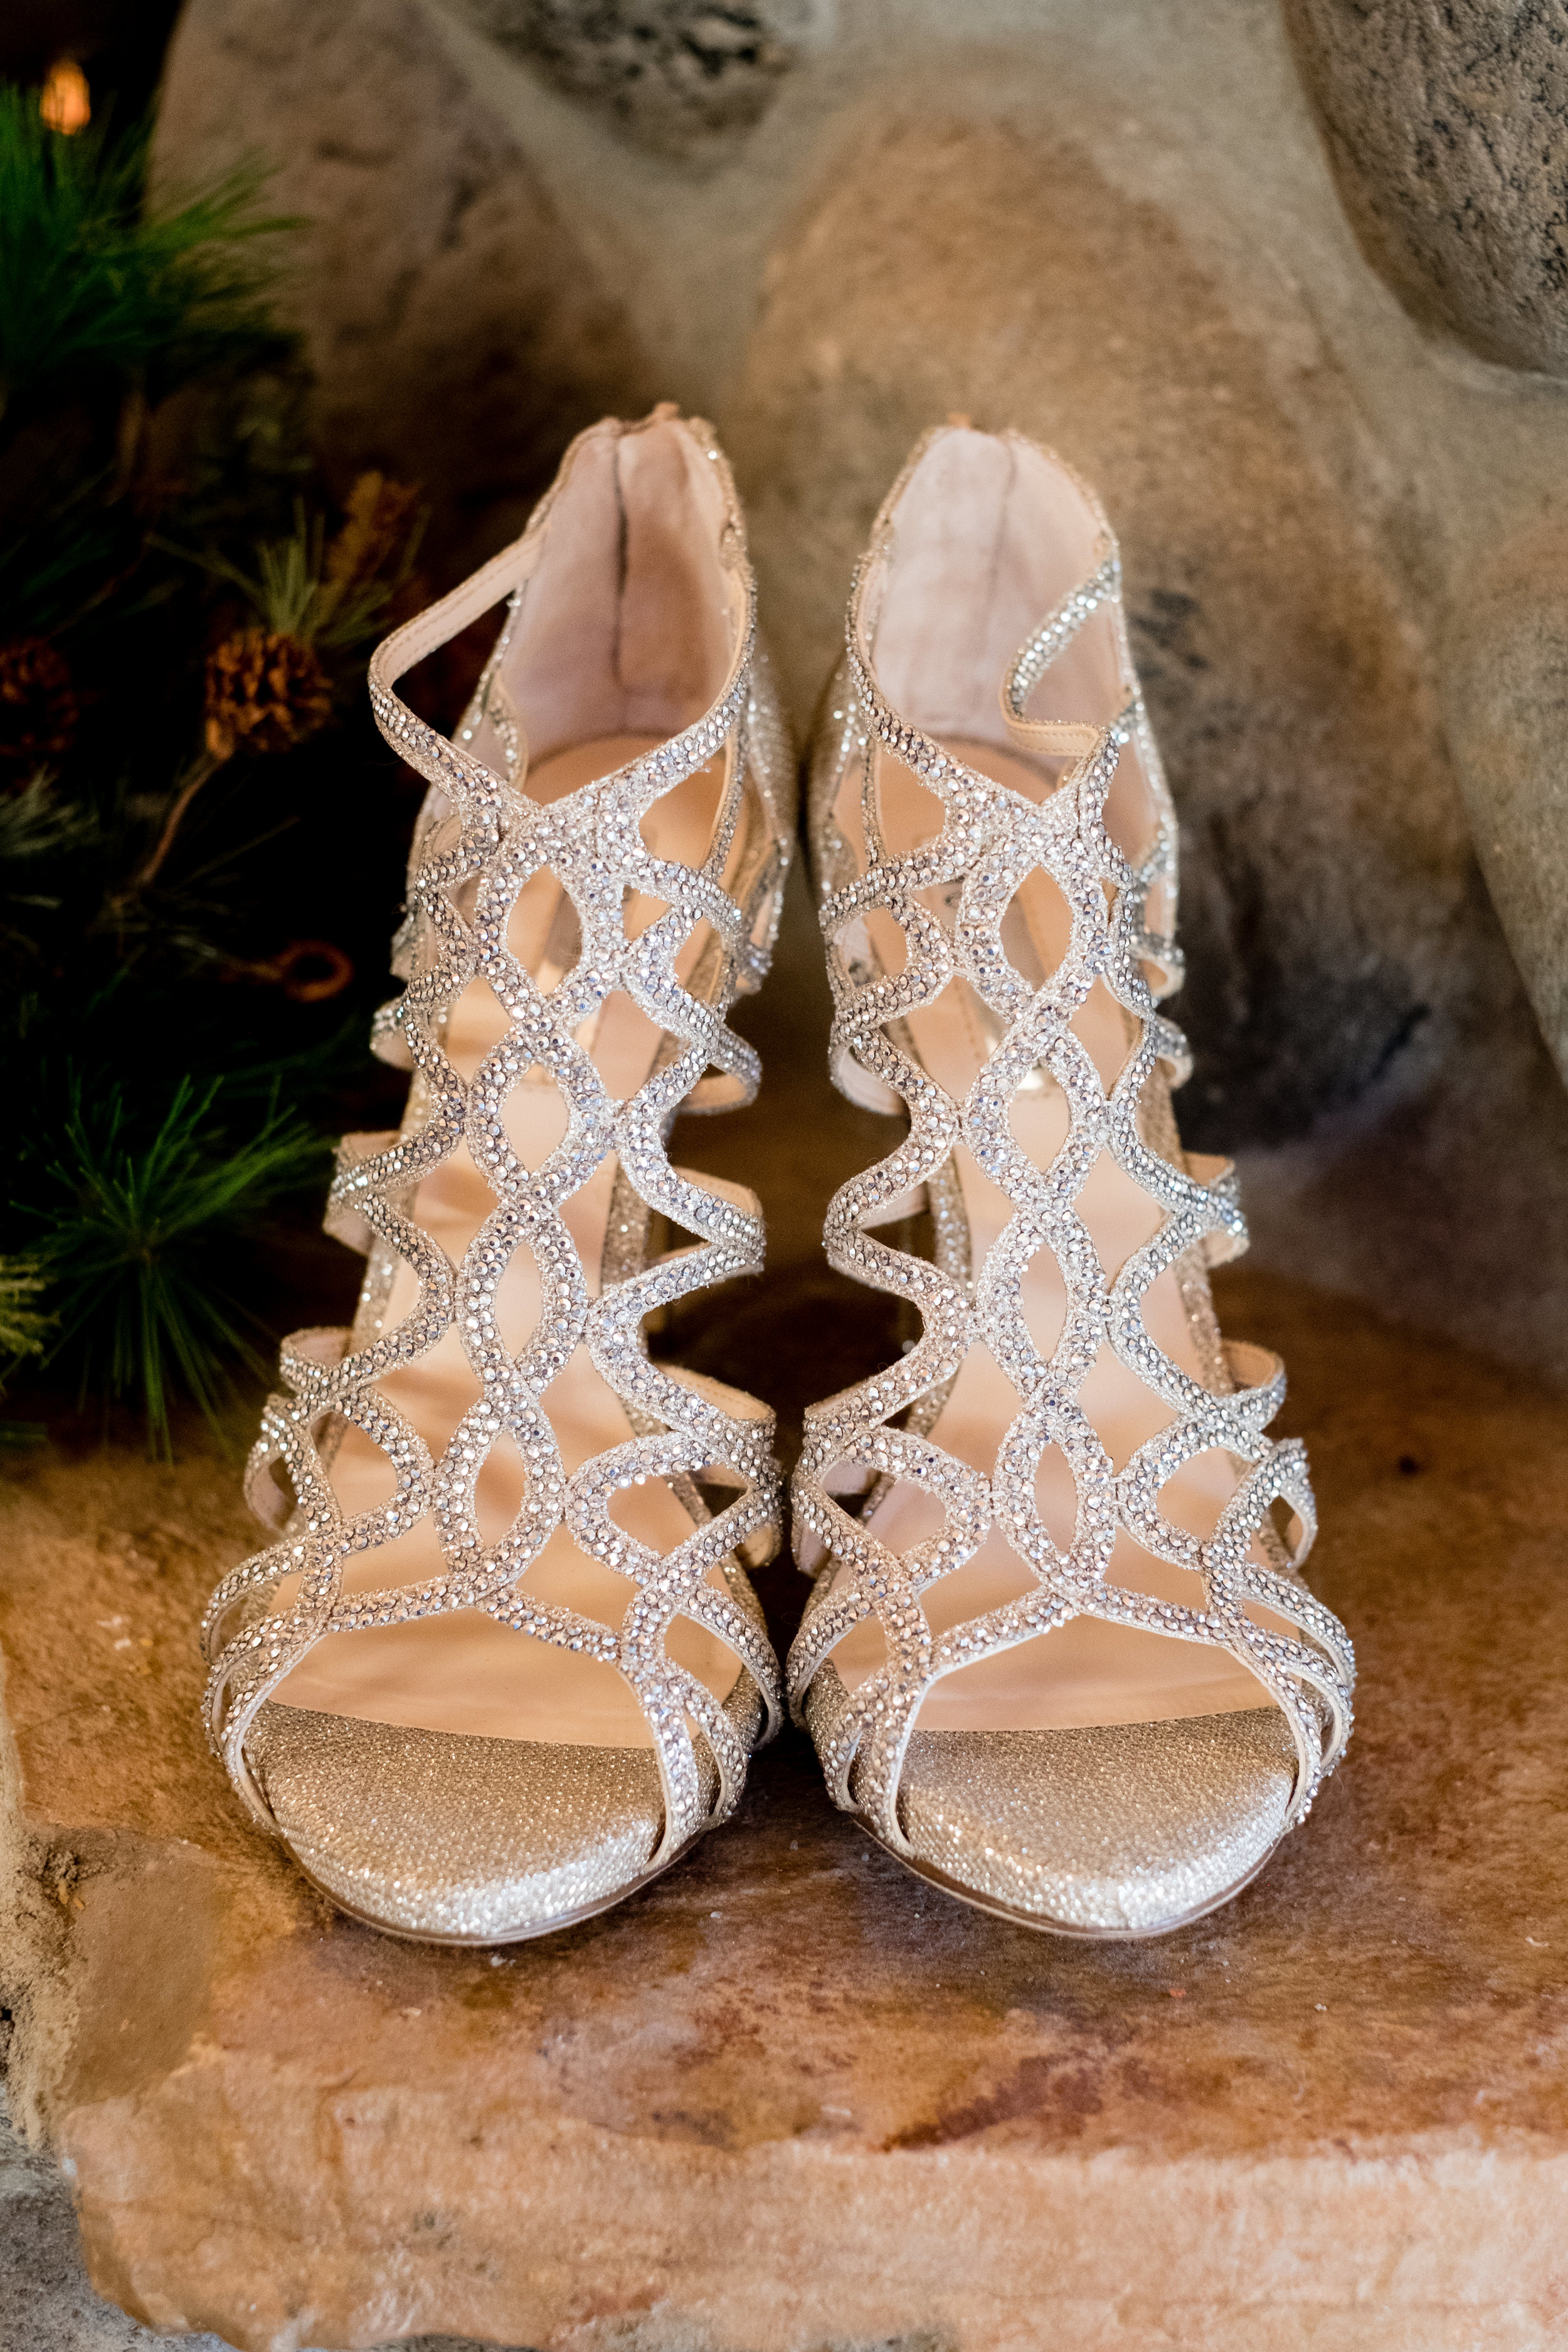 brides wedding shoes at pine peaks event center